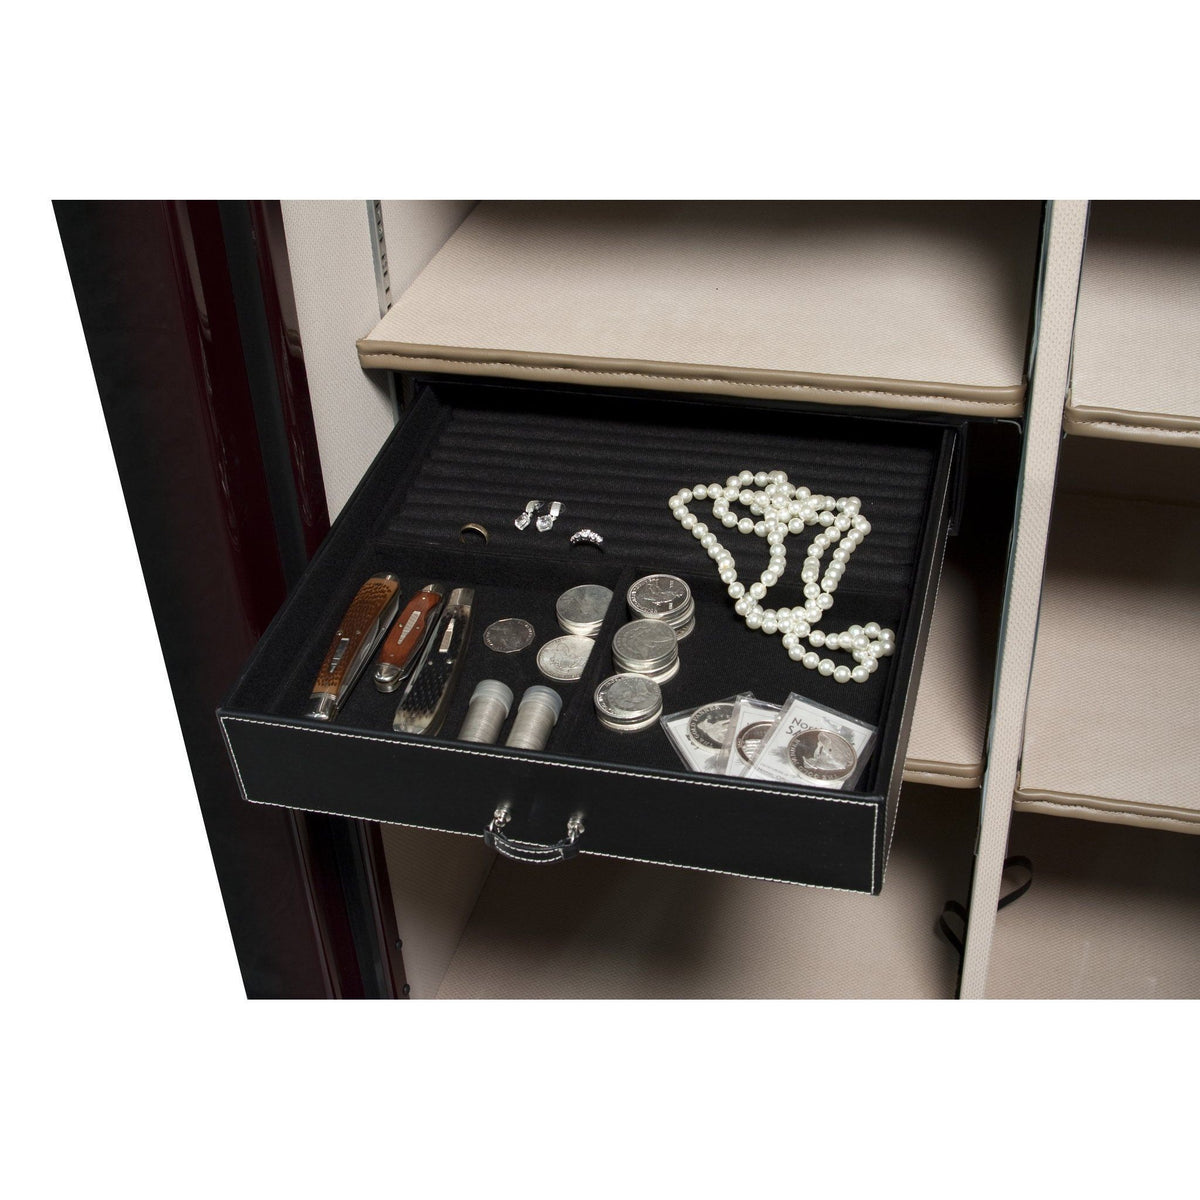 Accessory - Storage - Jewelry Drawer - 15 inch - under shelf mount - 50 size safes